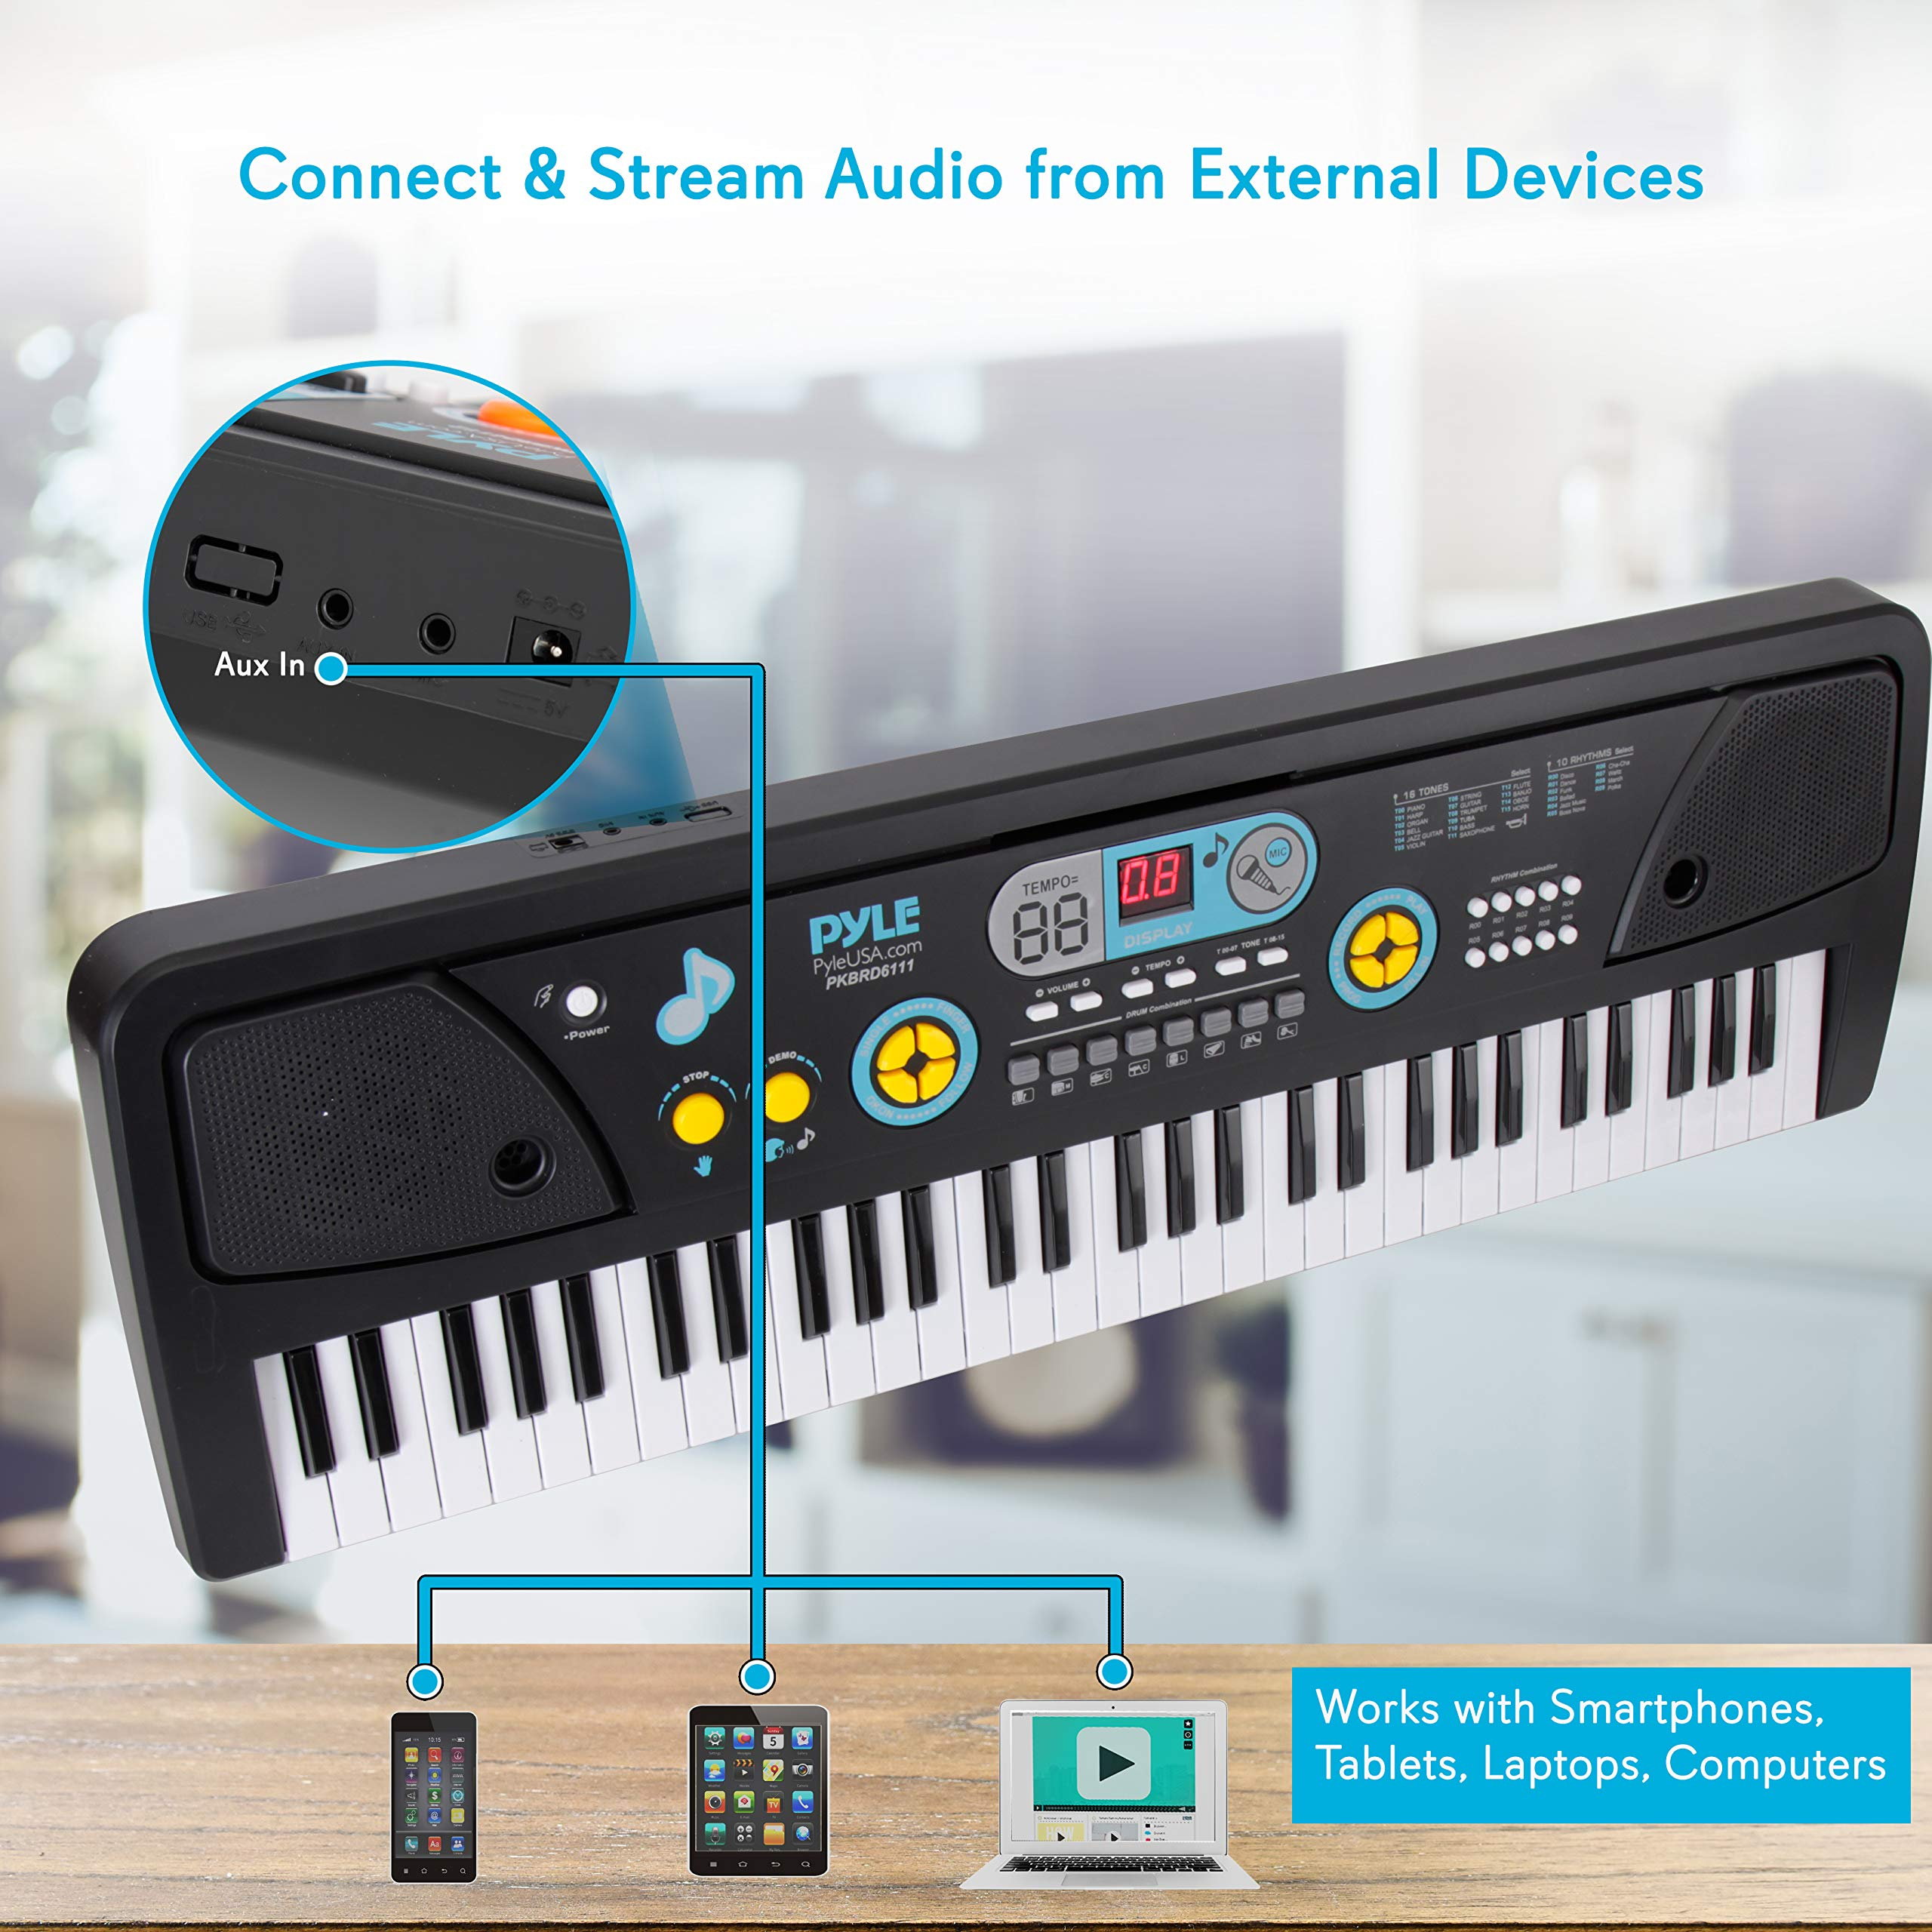 Digital Piano Kids Keyboard - Portable 61 Key Piano Keyboard, Learning Keyboard for Beginners w/ Drum Pad, Recording, Microphone, Music Sheet Stand, Built-in Speaker - Pyle by Directly Cheap (Image #3)